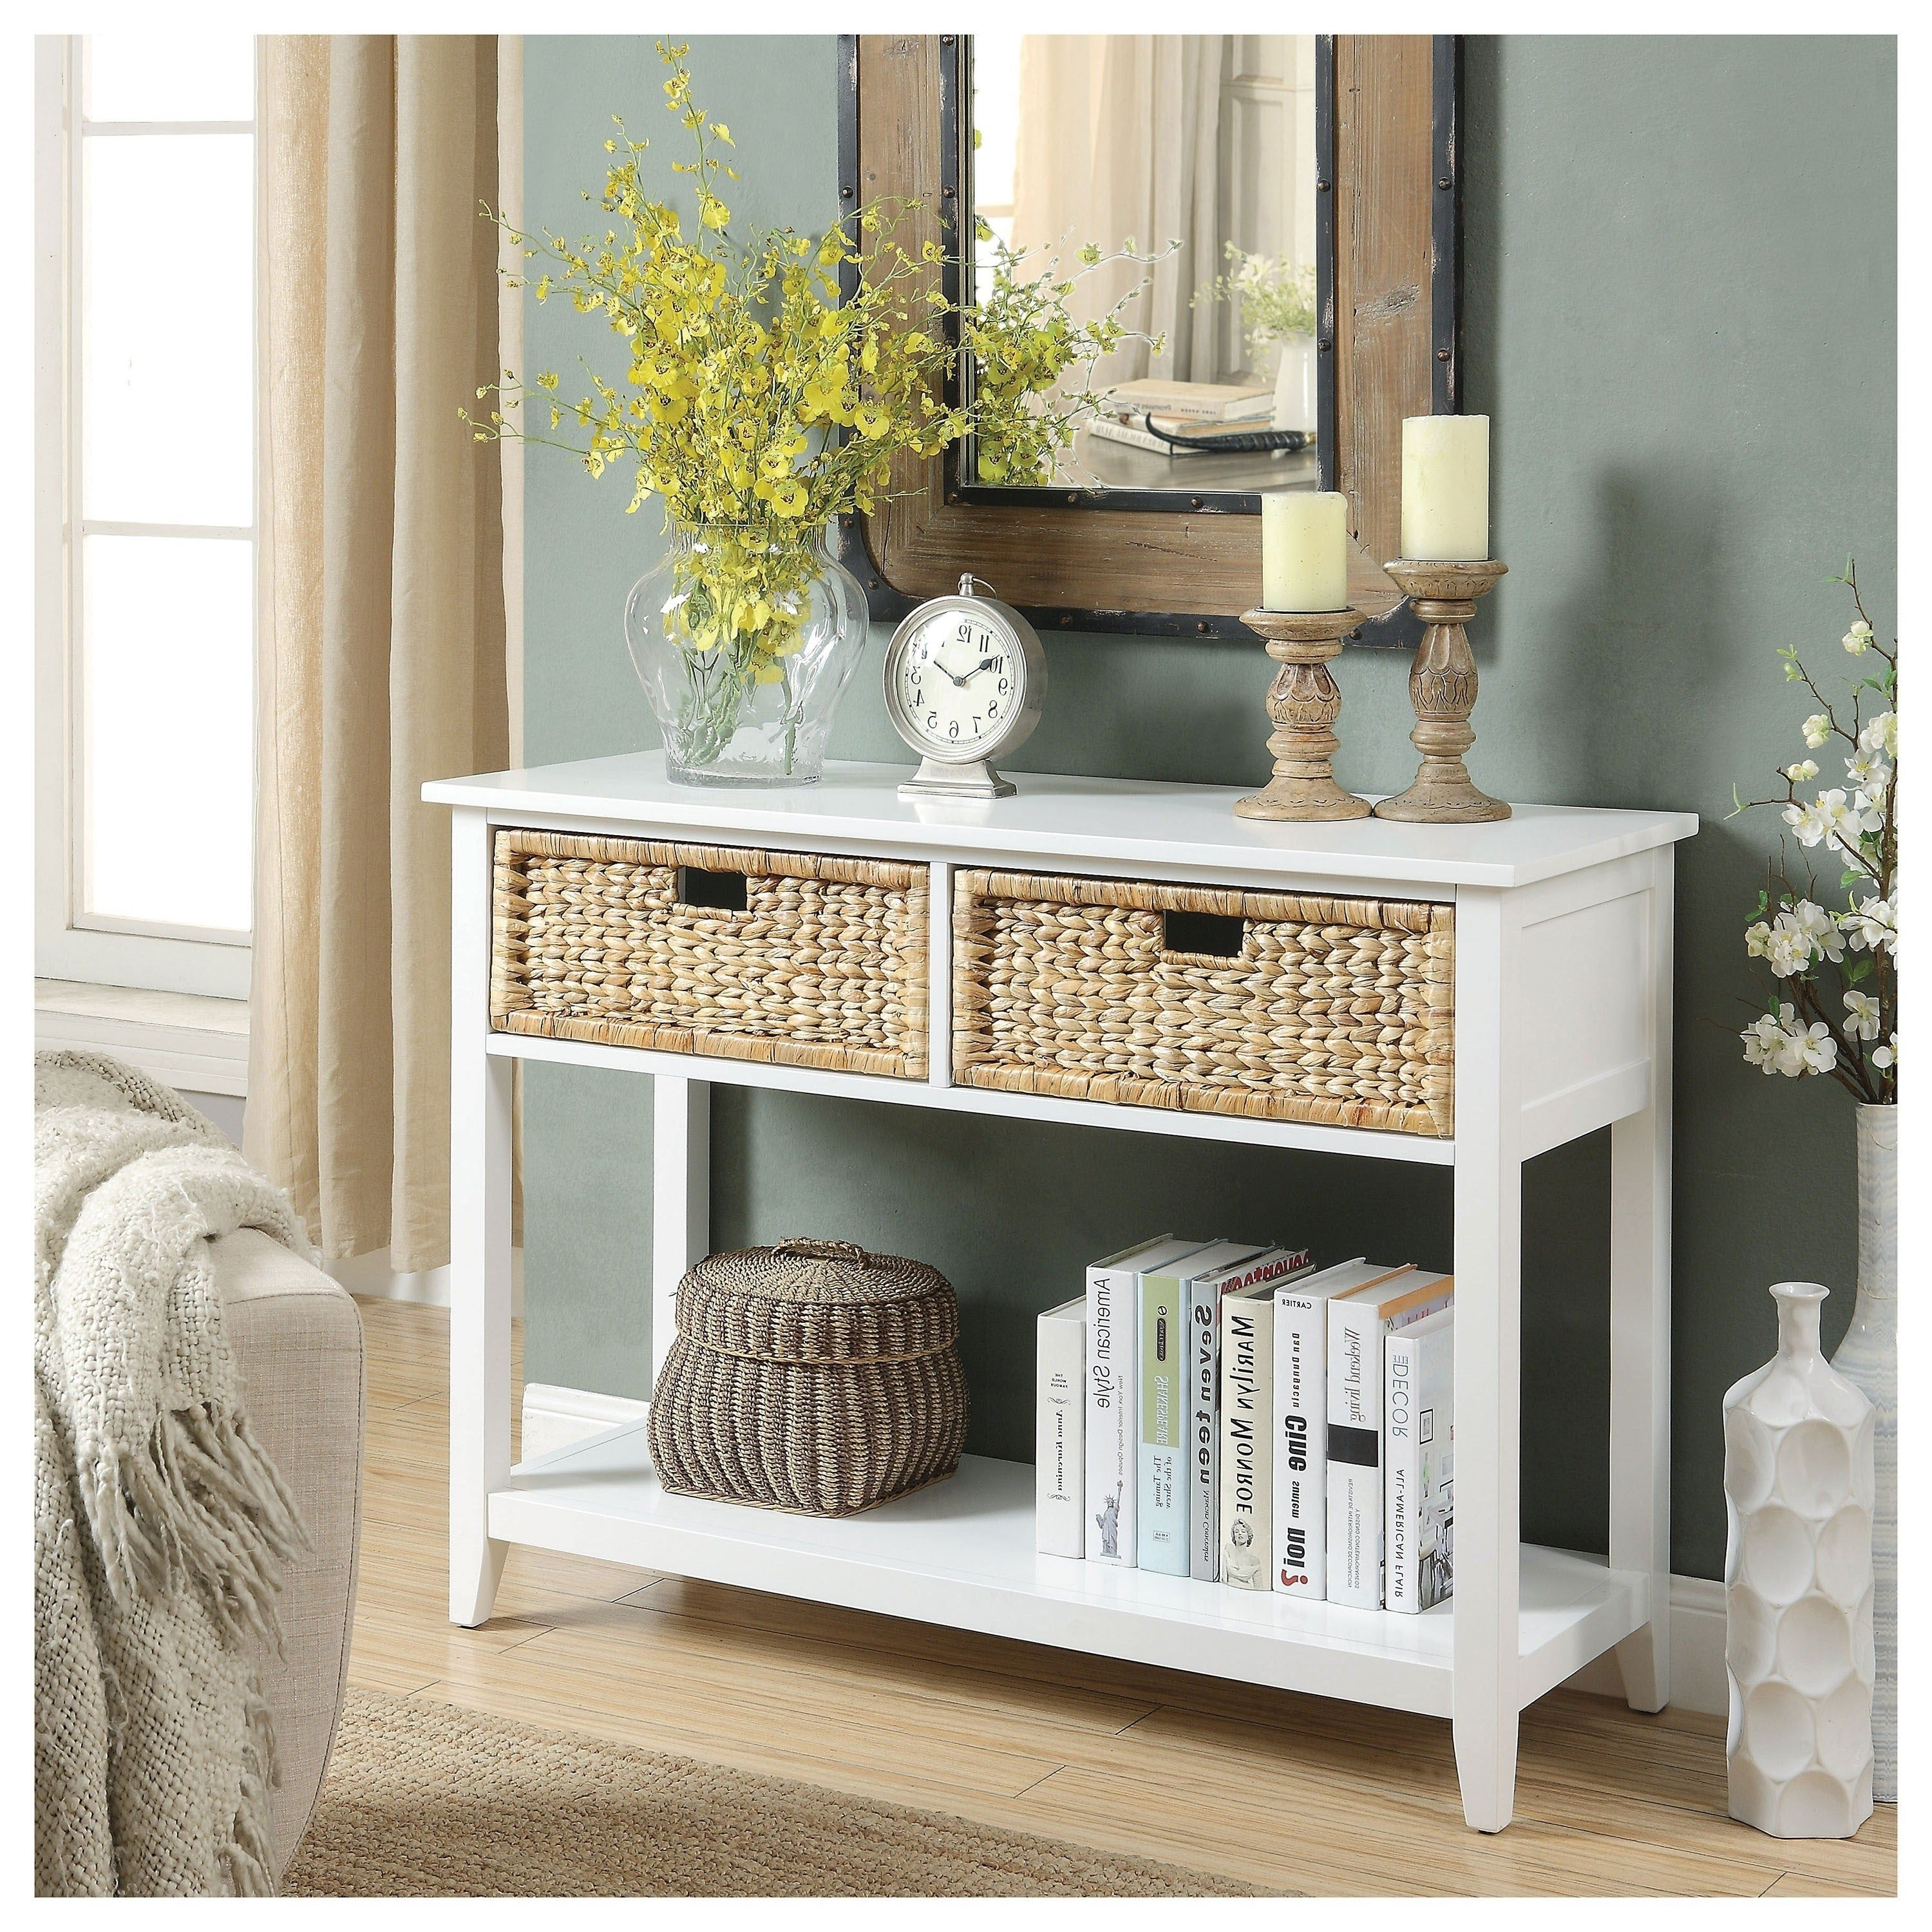 50 Inspiring Console Table Ideas Homyhomee Entryway Console Table Console Table Design Console Table Decorating